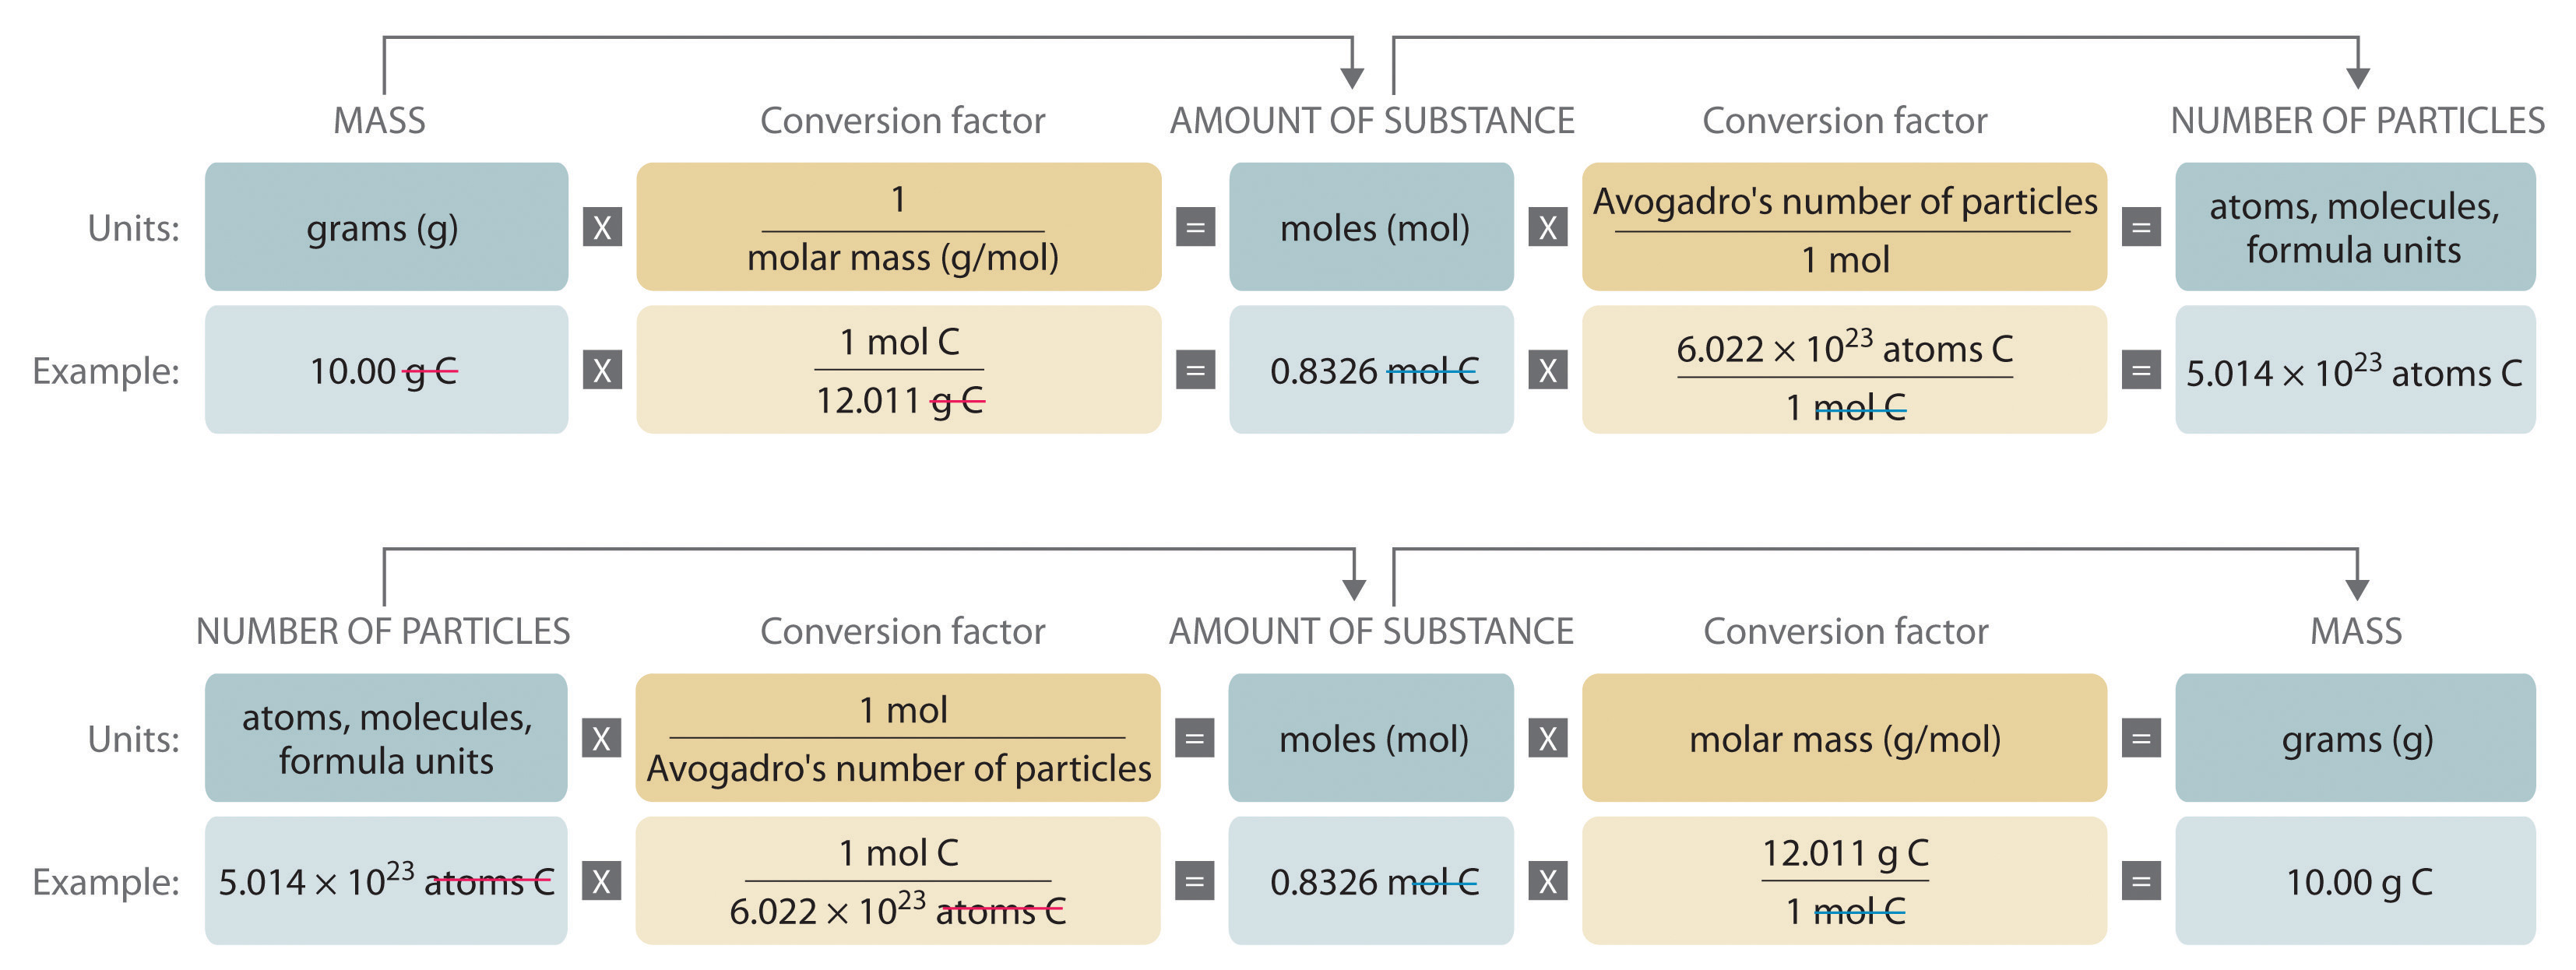 General chemistry principles patterns and applications 10 figure 32 a flowchart for converting between mass the number of moles and the number of atoms molecules or formula units gamestrikefo Choice Image